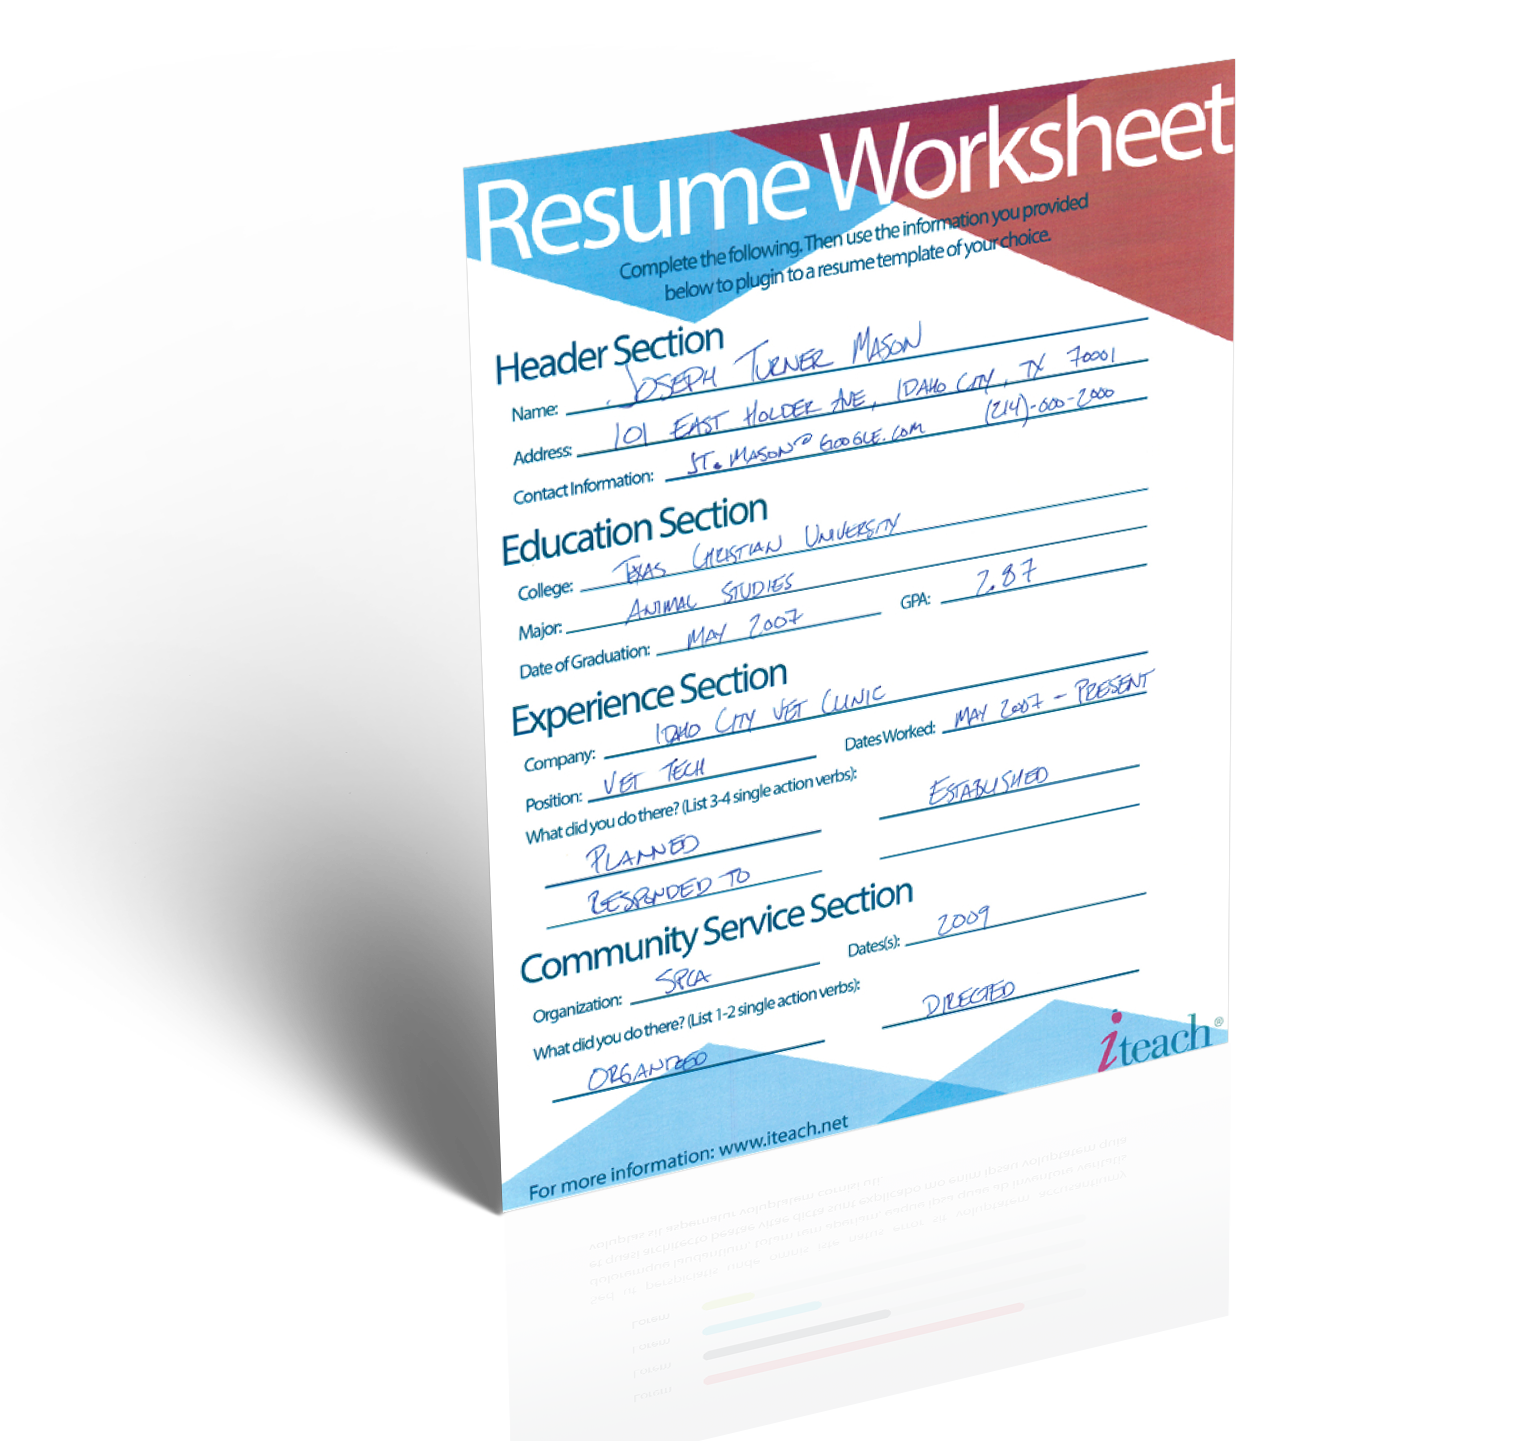 Employability Skills Worksheets Word Teacher Resume   Minute Guide To Writing The Perfect Resume Slope Problems Worksheet Excel with Chapter 3 Cell Structure And Function Worksheet Answers Word Download This Worksheet Reading Scales Worksheet Ks1 Pdf